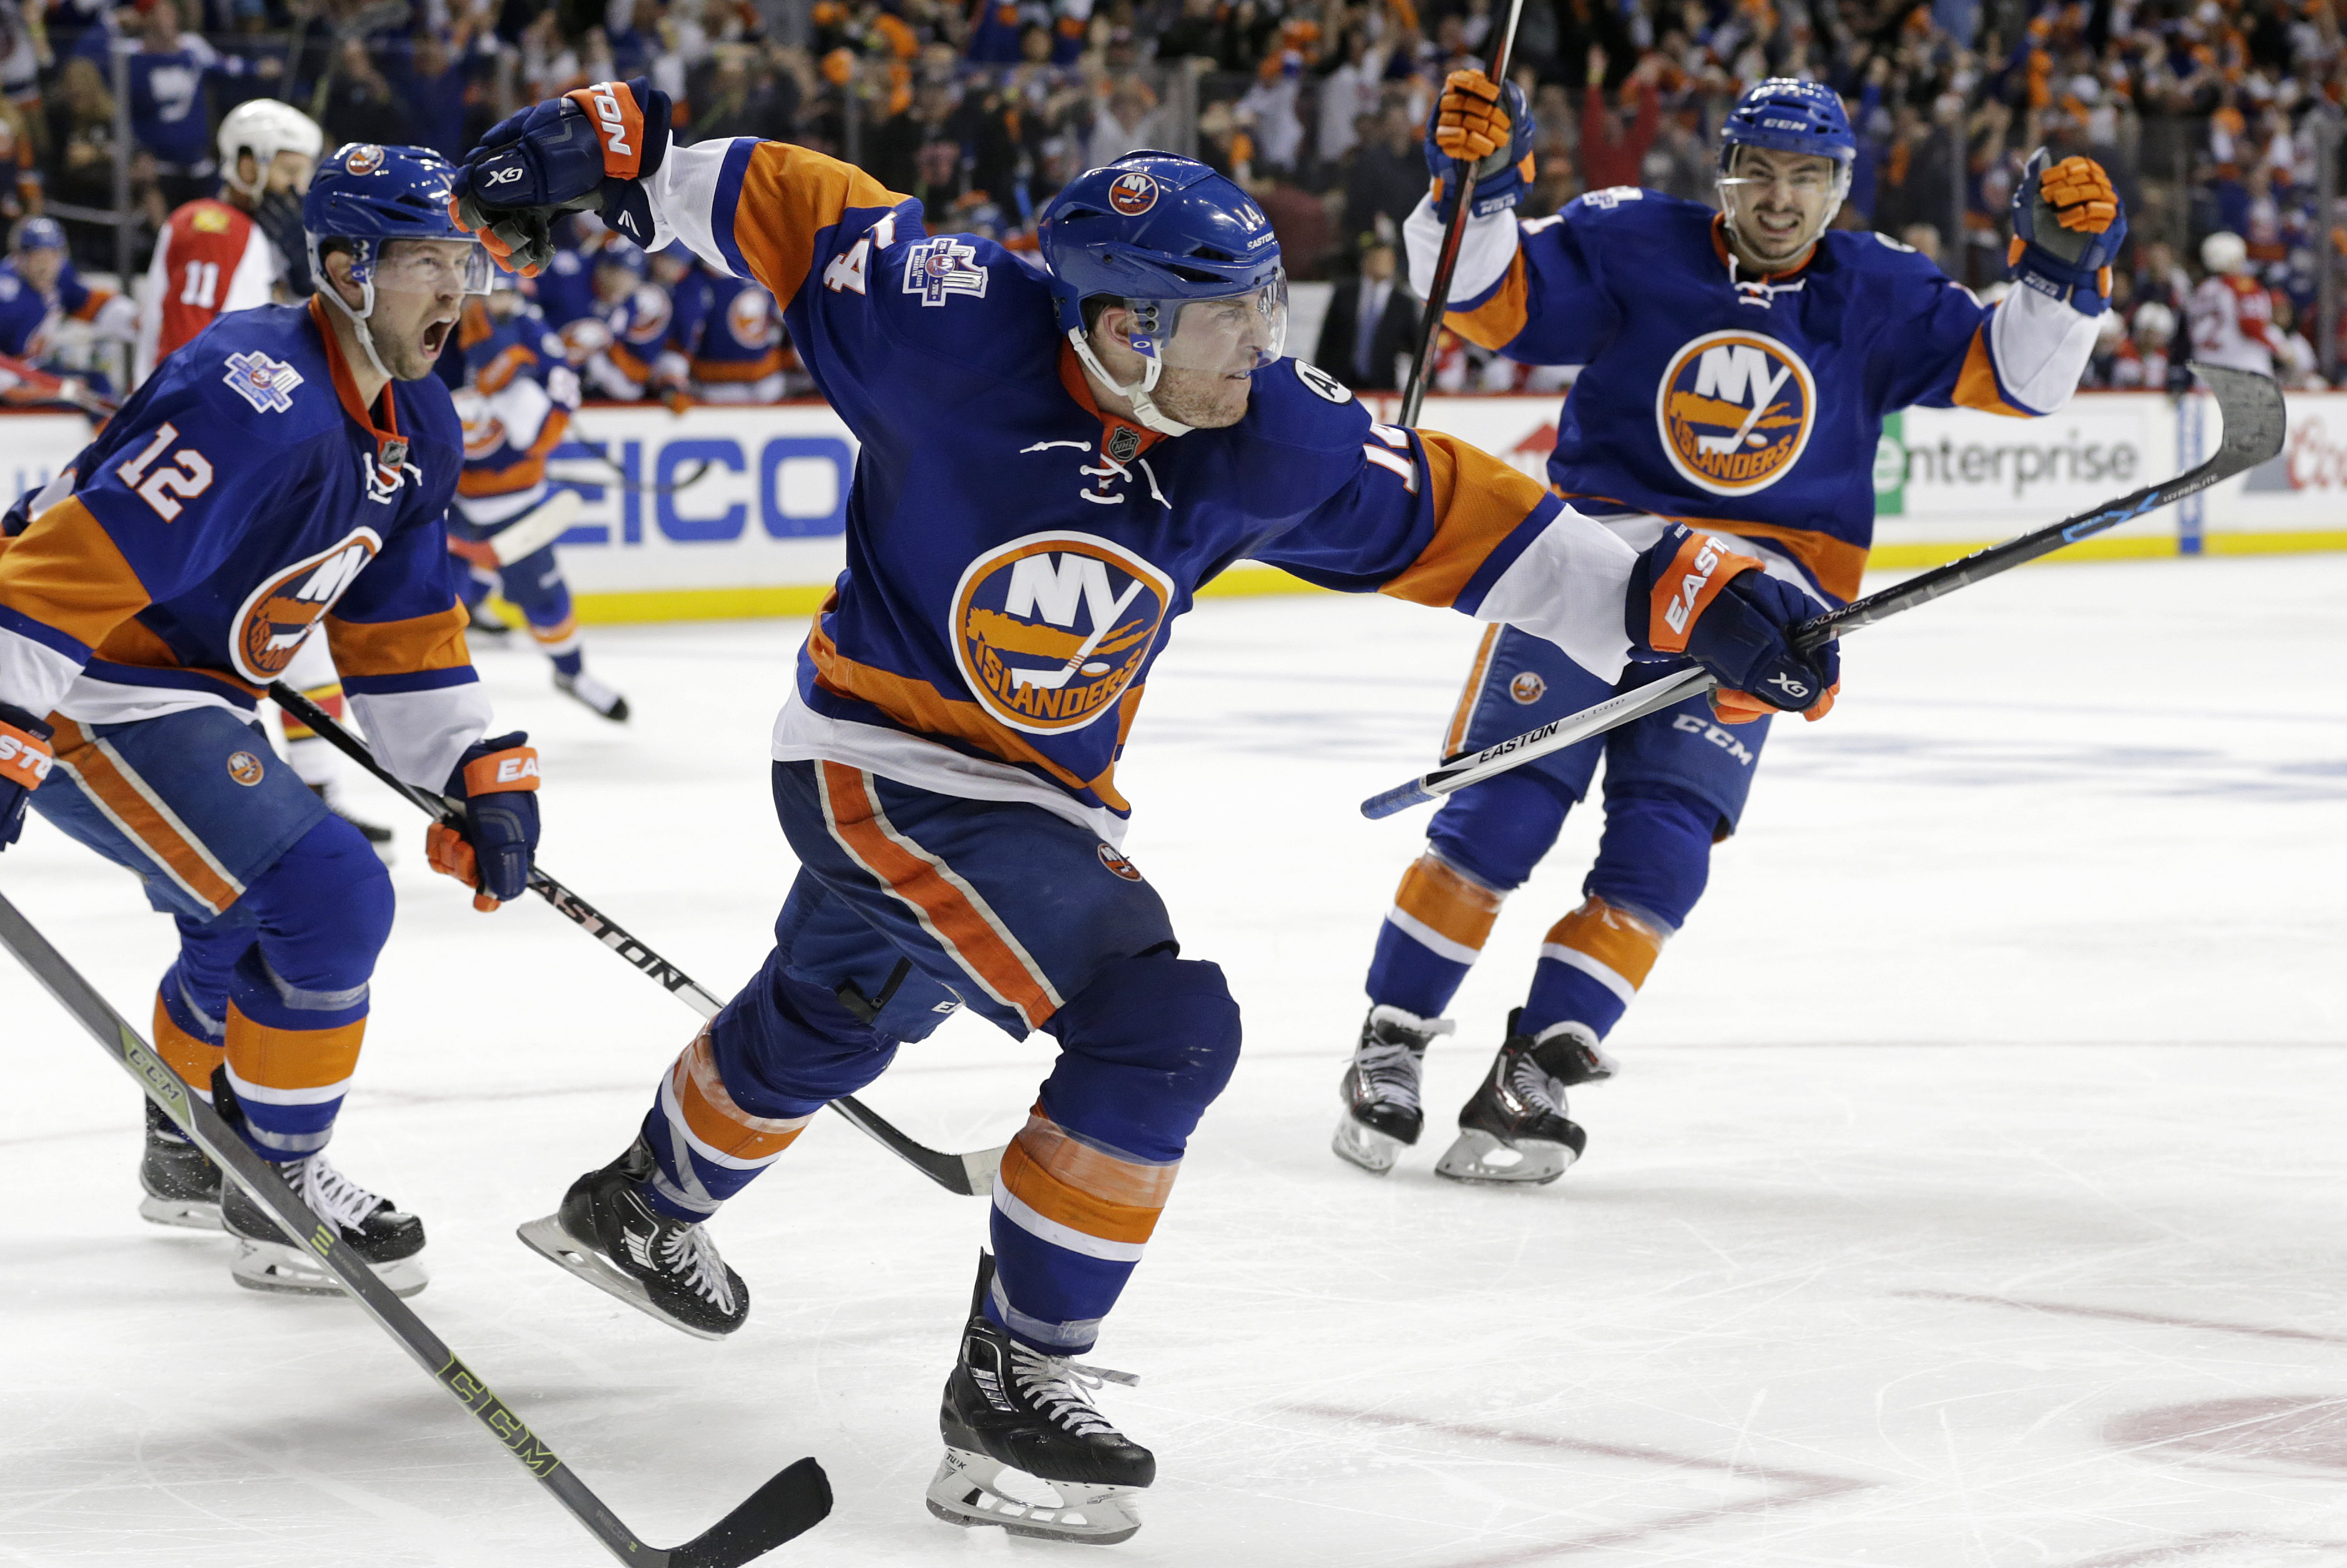 New York Islanders defenseman Thomas Hickey (14) celebrates after scoring the game-winning goal during overtime in Game 3 of an NHL hockey first-round Stanley Cup playoff series against the Florida Panthers, Sunday, April 17, 2016, in New York. The Island